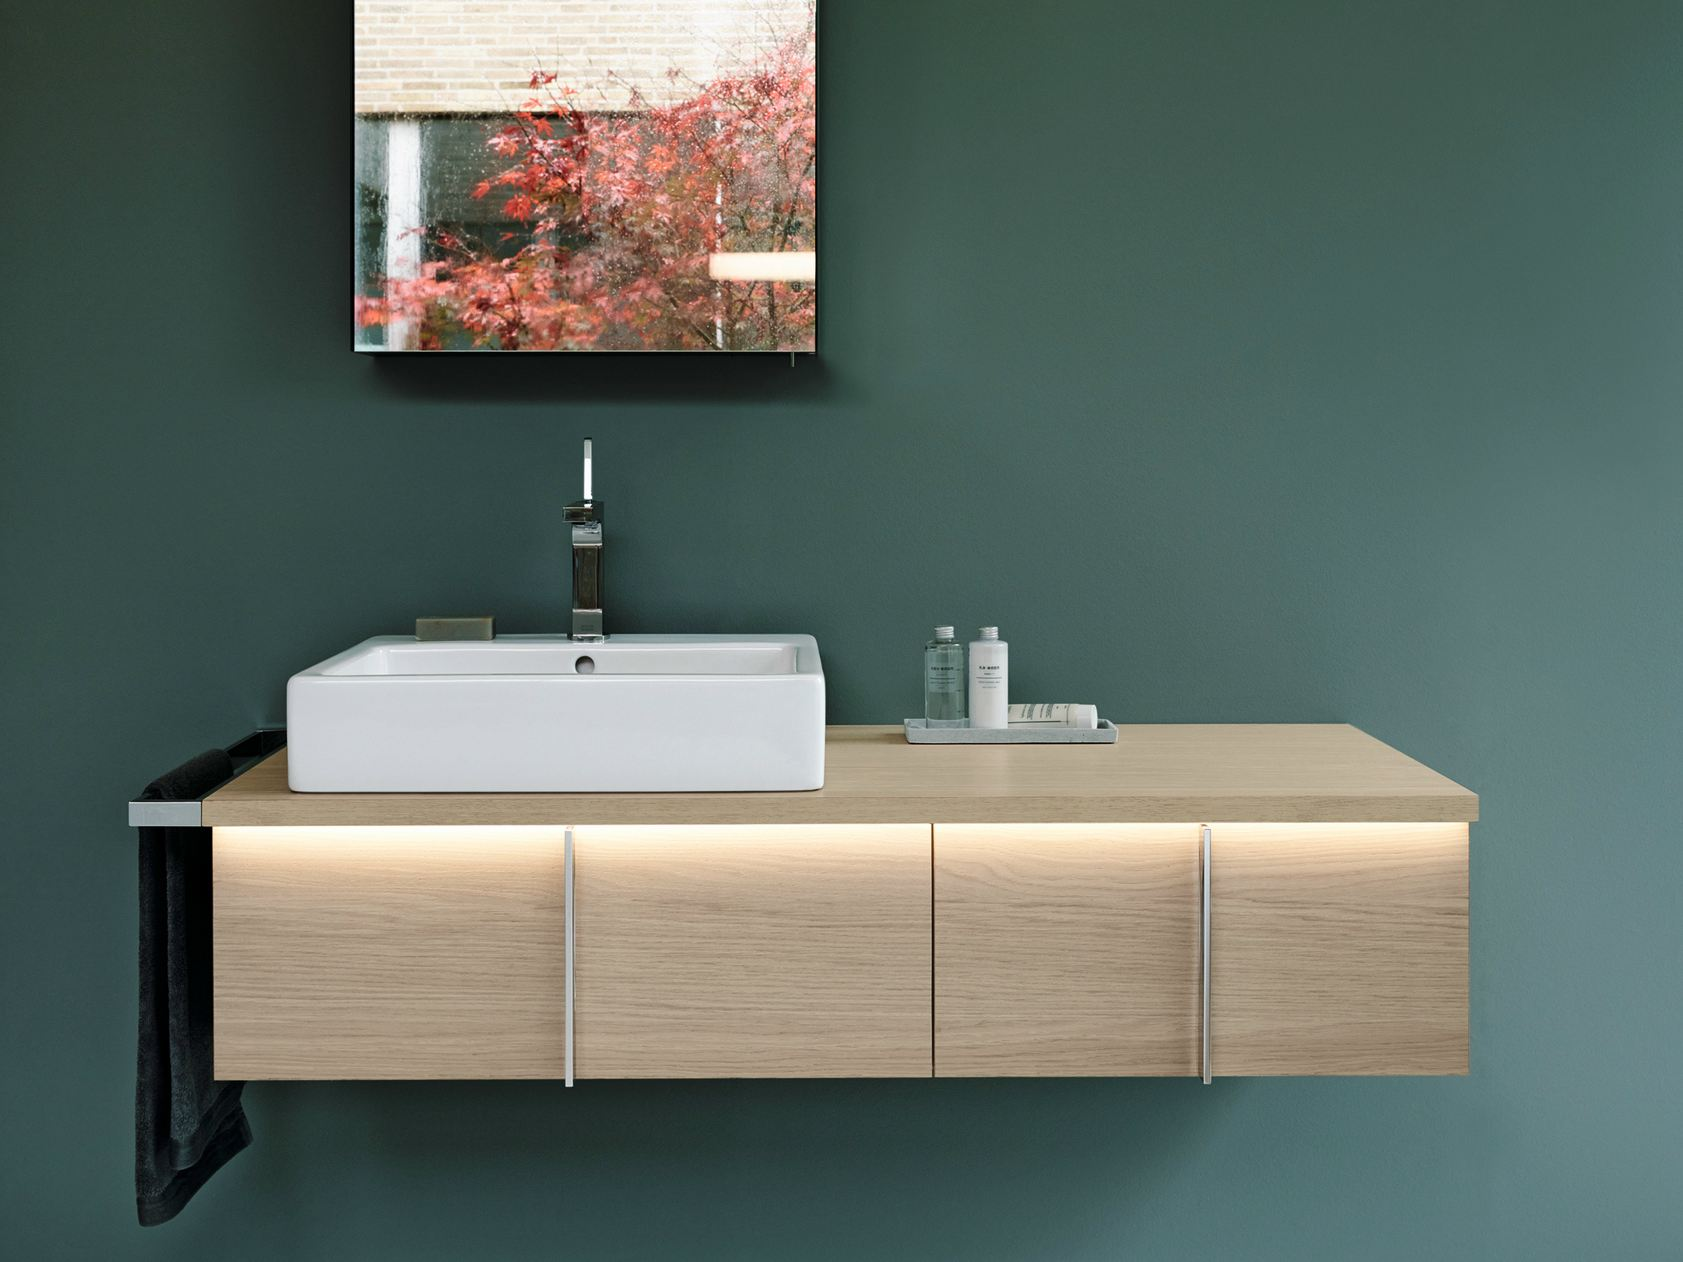 Duravit Waschtischunterschrank Bathroom Showroom Miami Miami Dade County Decorator S Plumbing